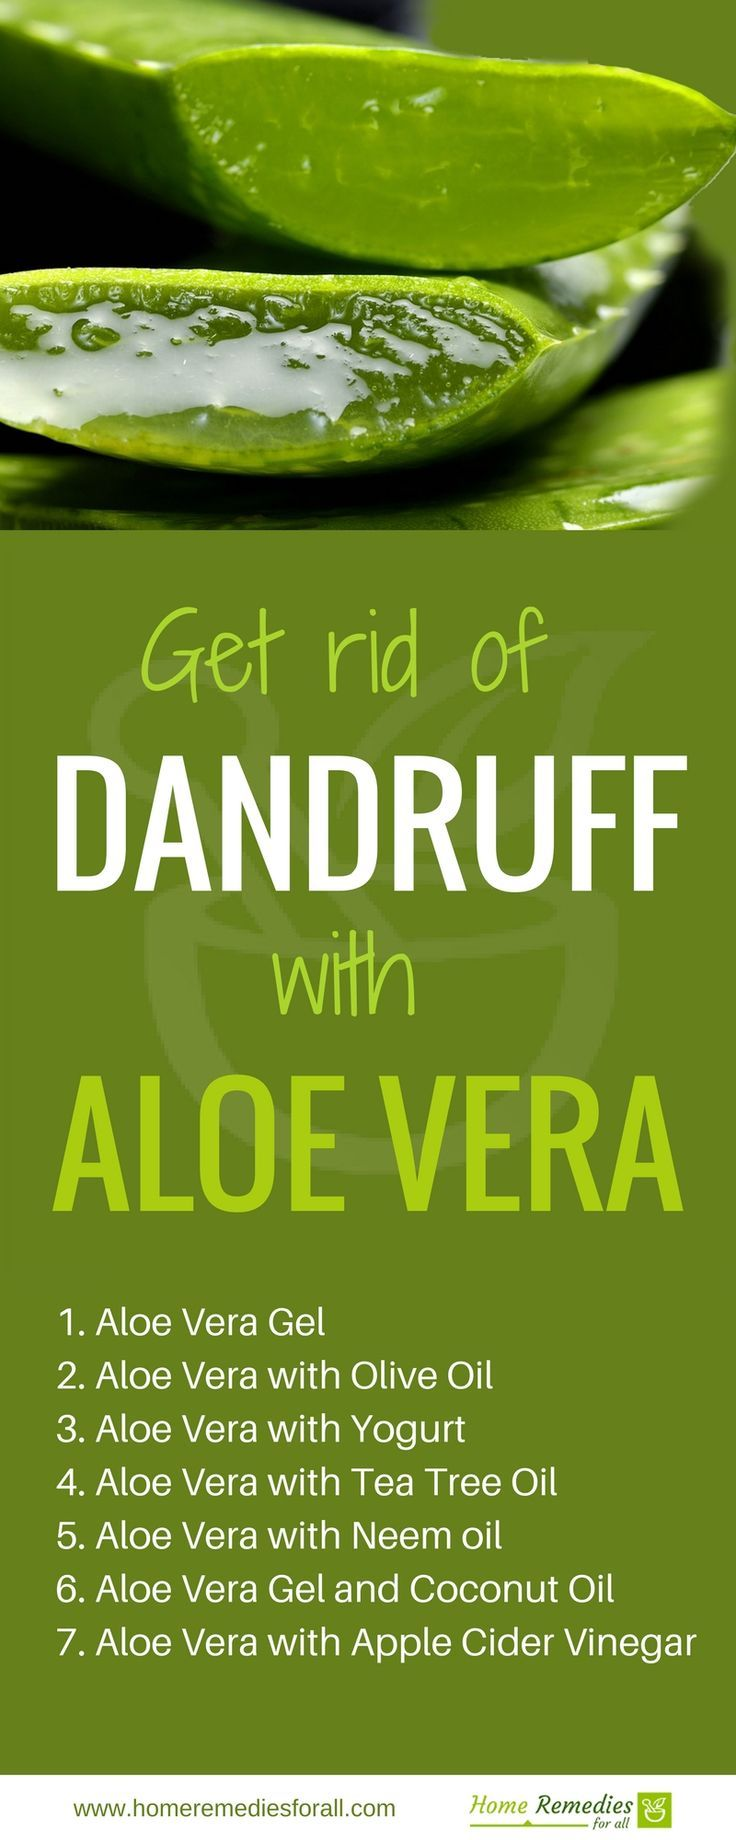 7 Ways To Use Aloe Vera For Dandruff Hair Dandruff Dandruff